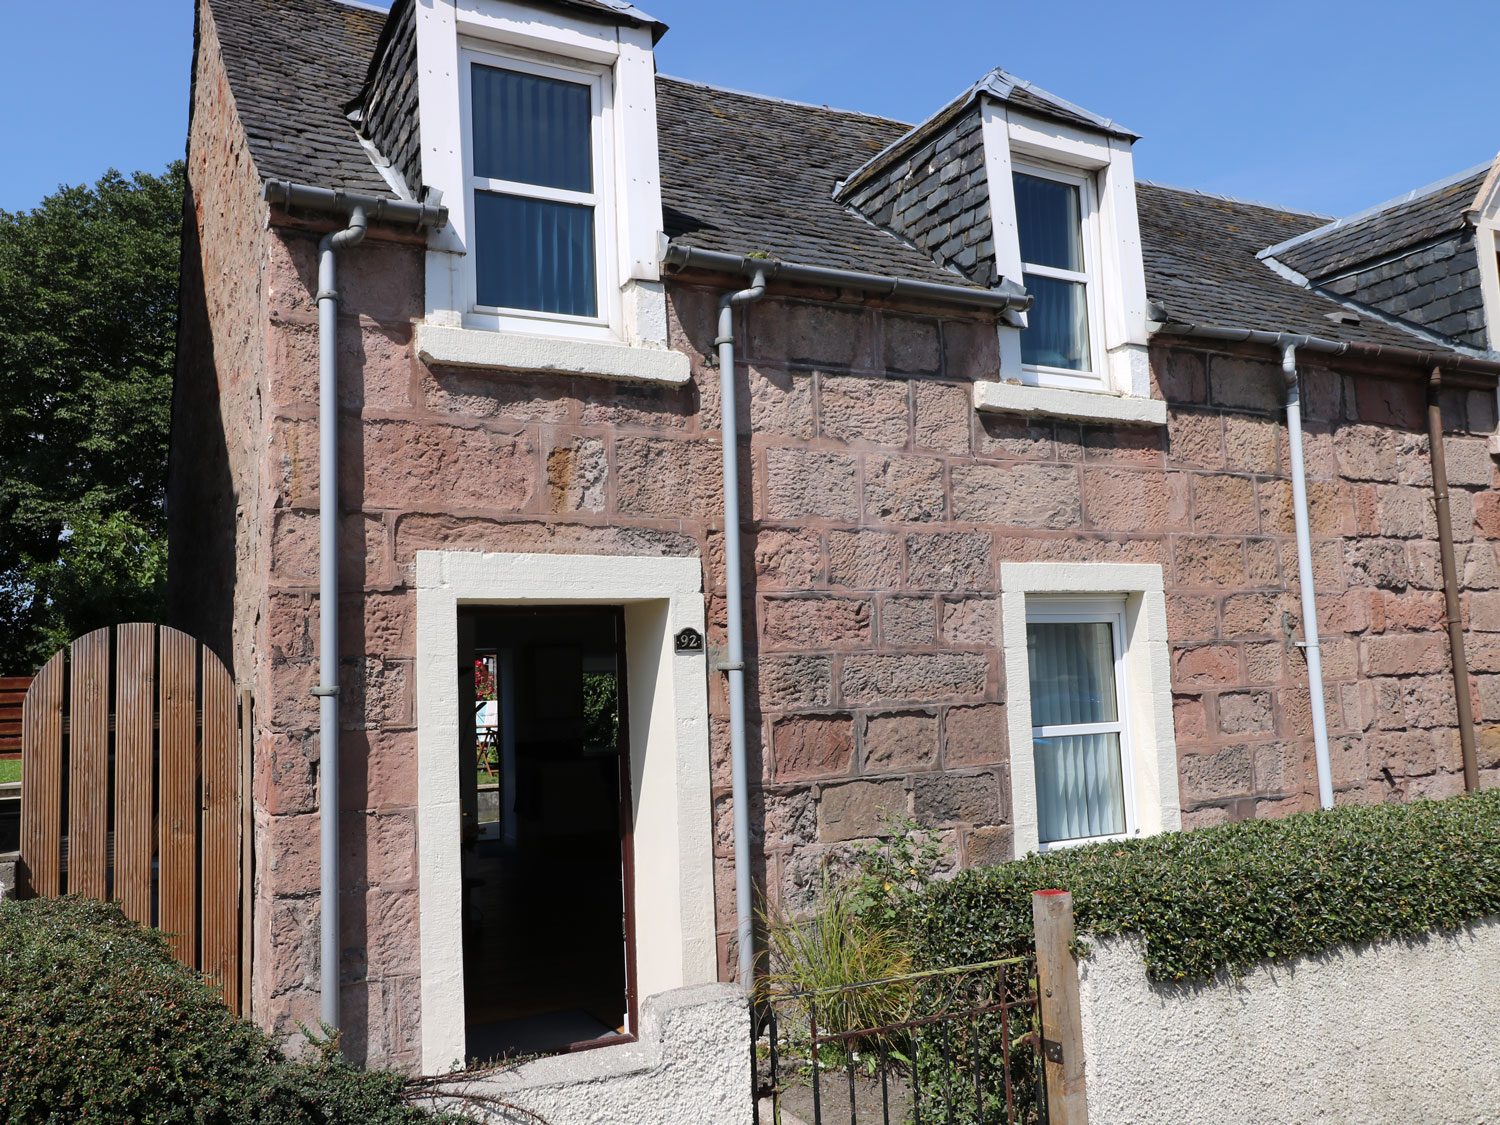 2 bedroom Cottage for rent in Inverness, Highlands